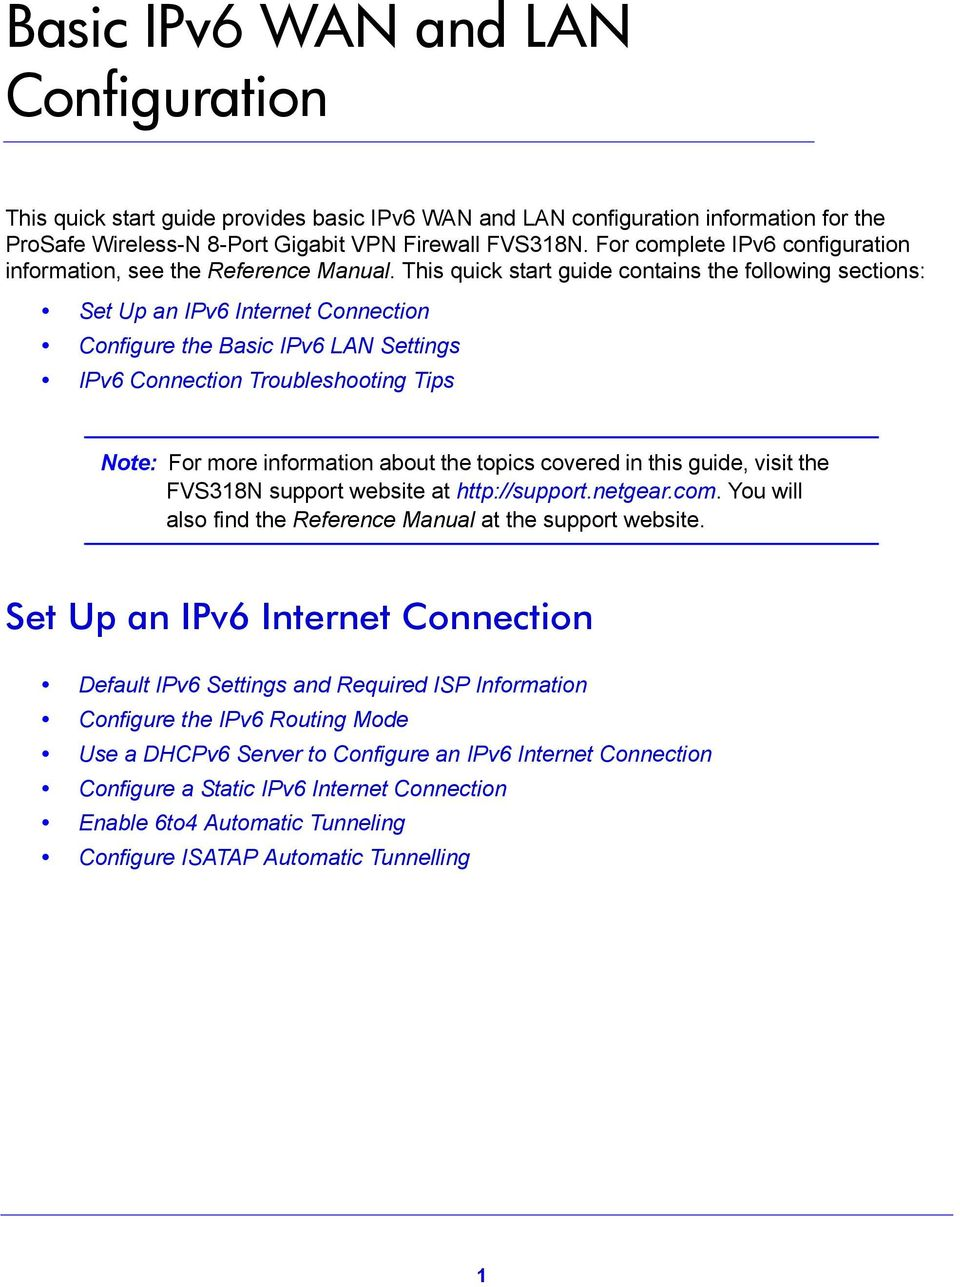 This quick start guide contains the following sections: Set Up an IPv6 Internet Connection Configure the Basic IPv6 LAN Settings IPv6 Connection Troubleshooting Tips Note: For more information about